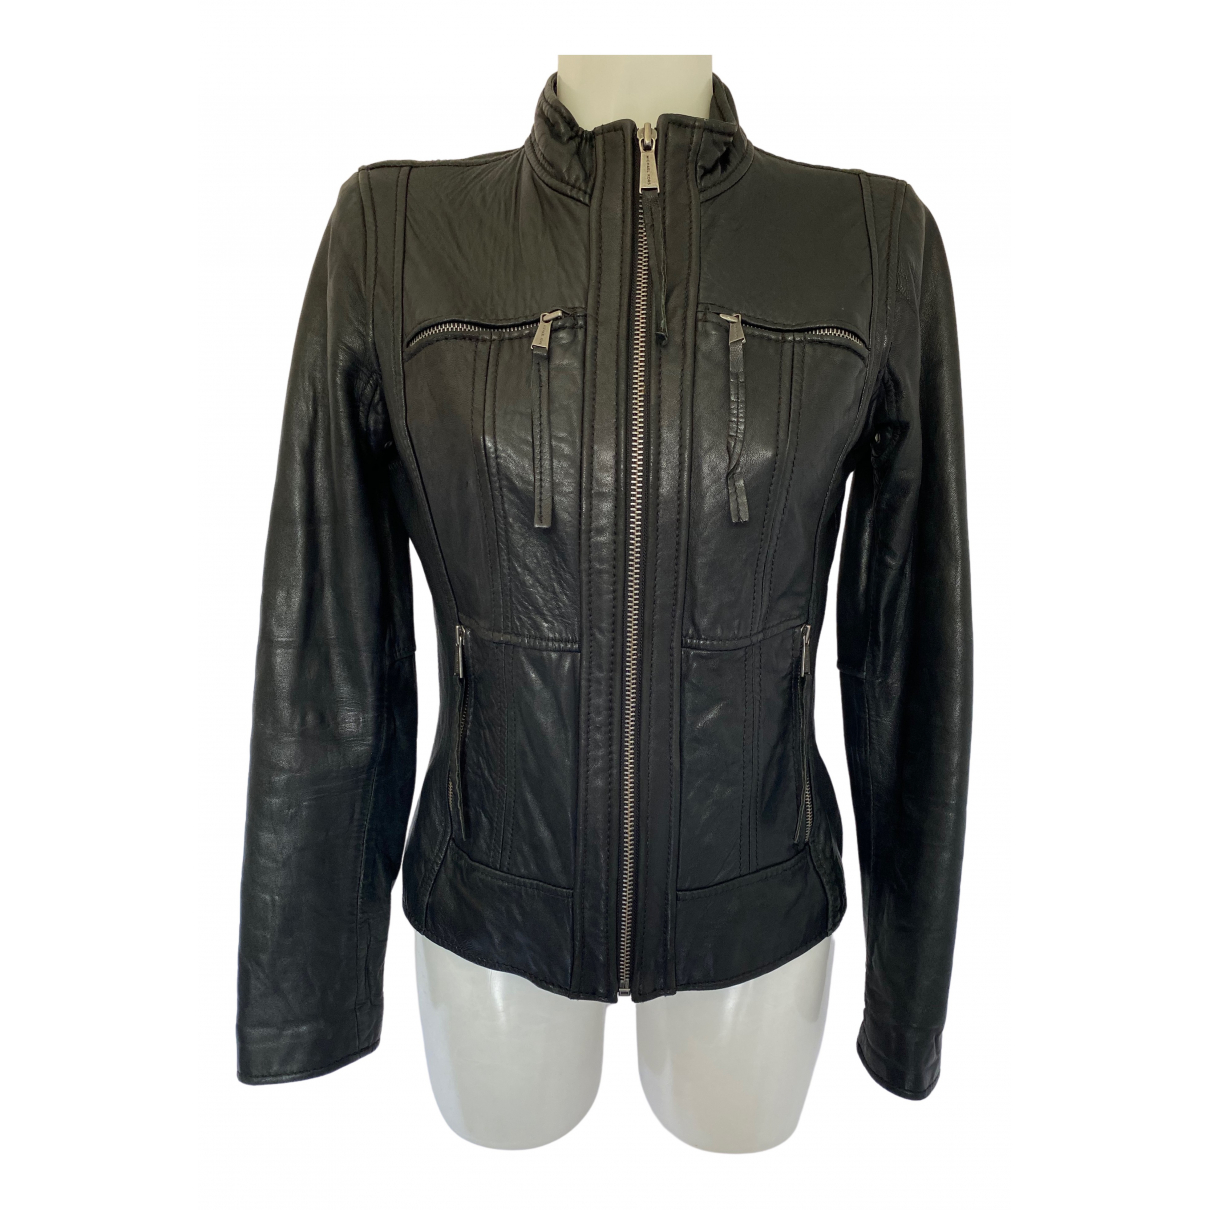 Michael Kors \N Black Leather jacket for Women S International